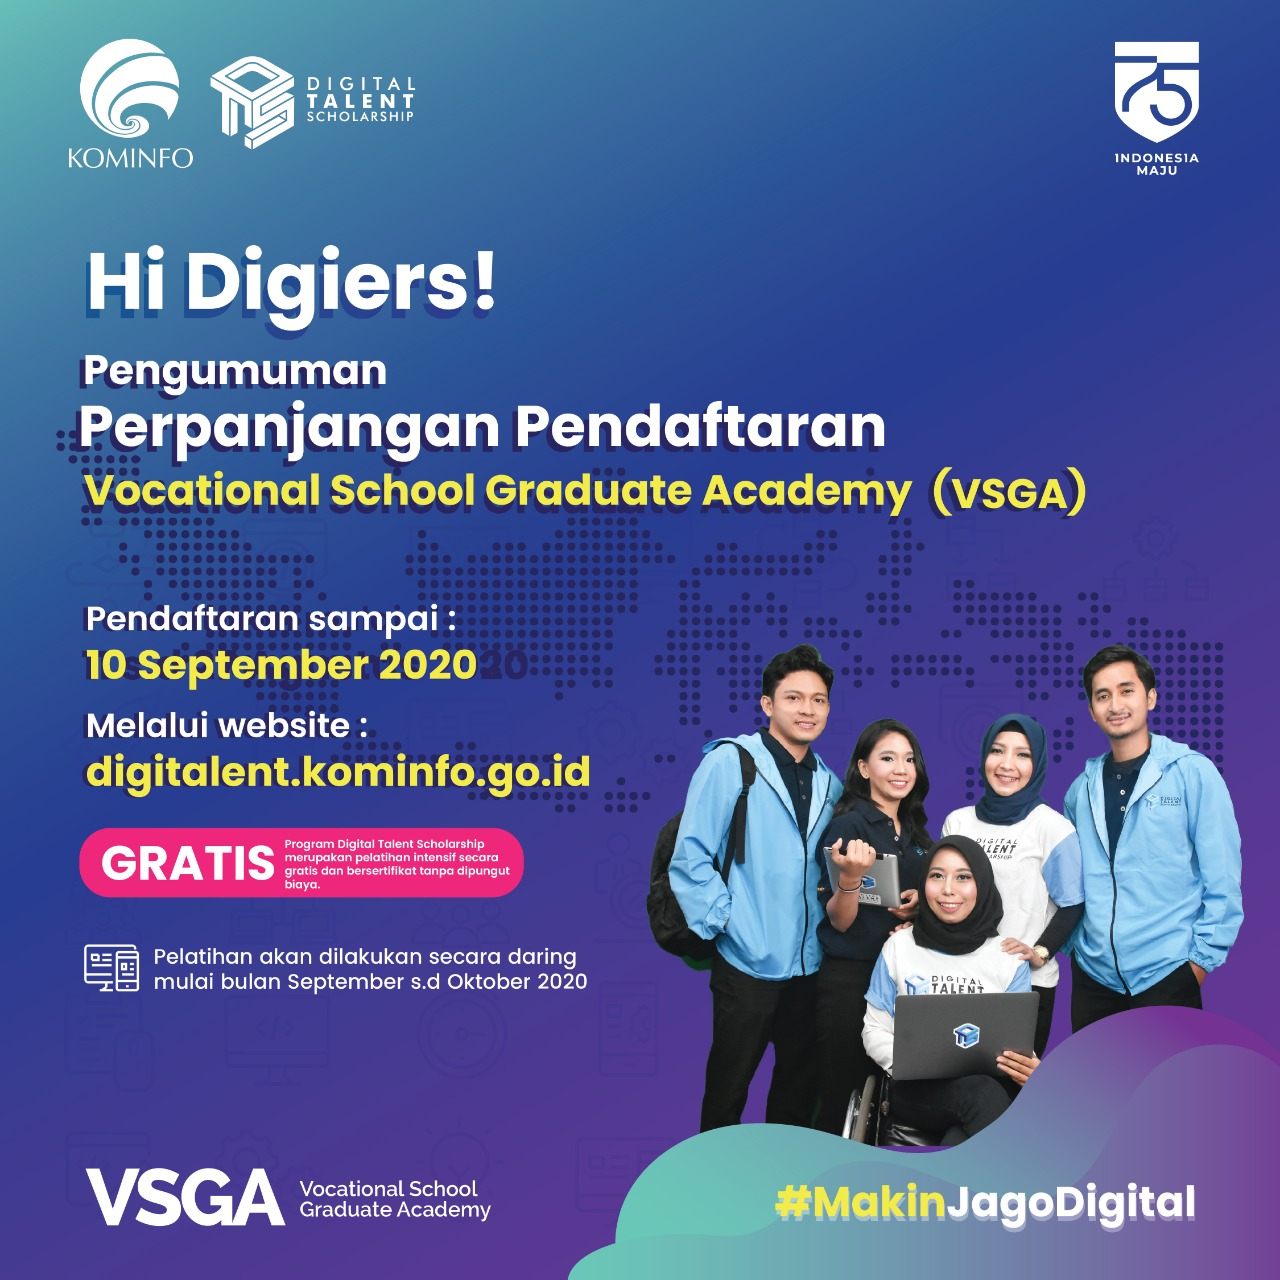 Foto Artikel: Beasiswa Digital Talent Scholarship 2020 PNUP